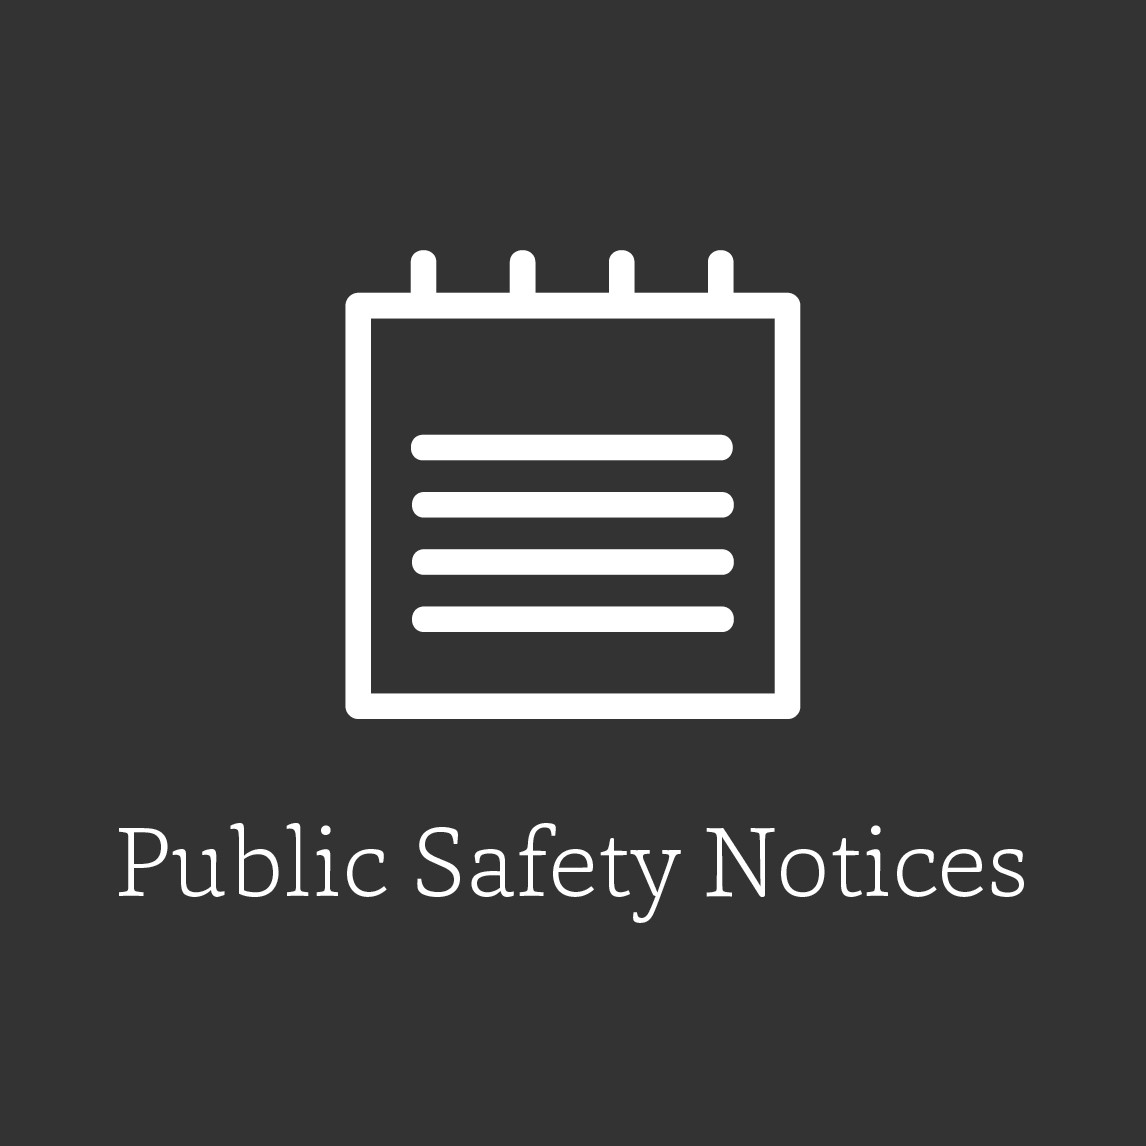 icon graphic for public safety notices, clipboard